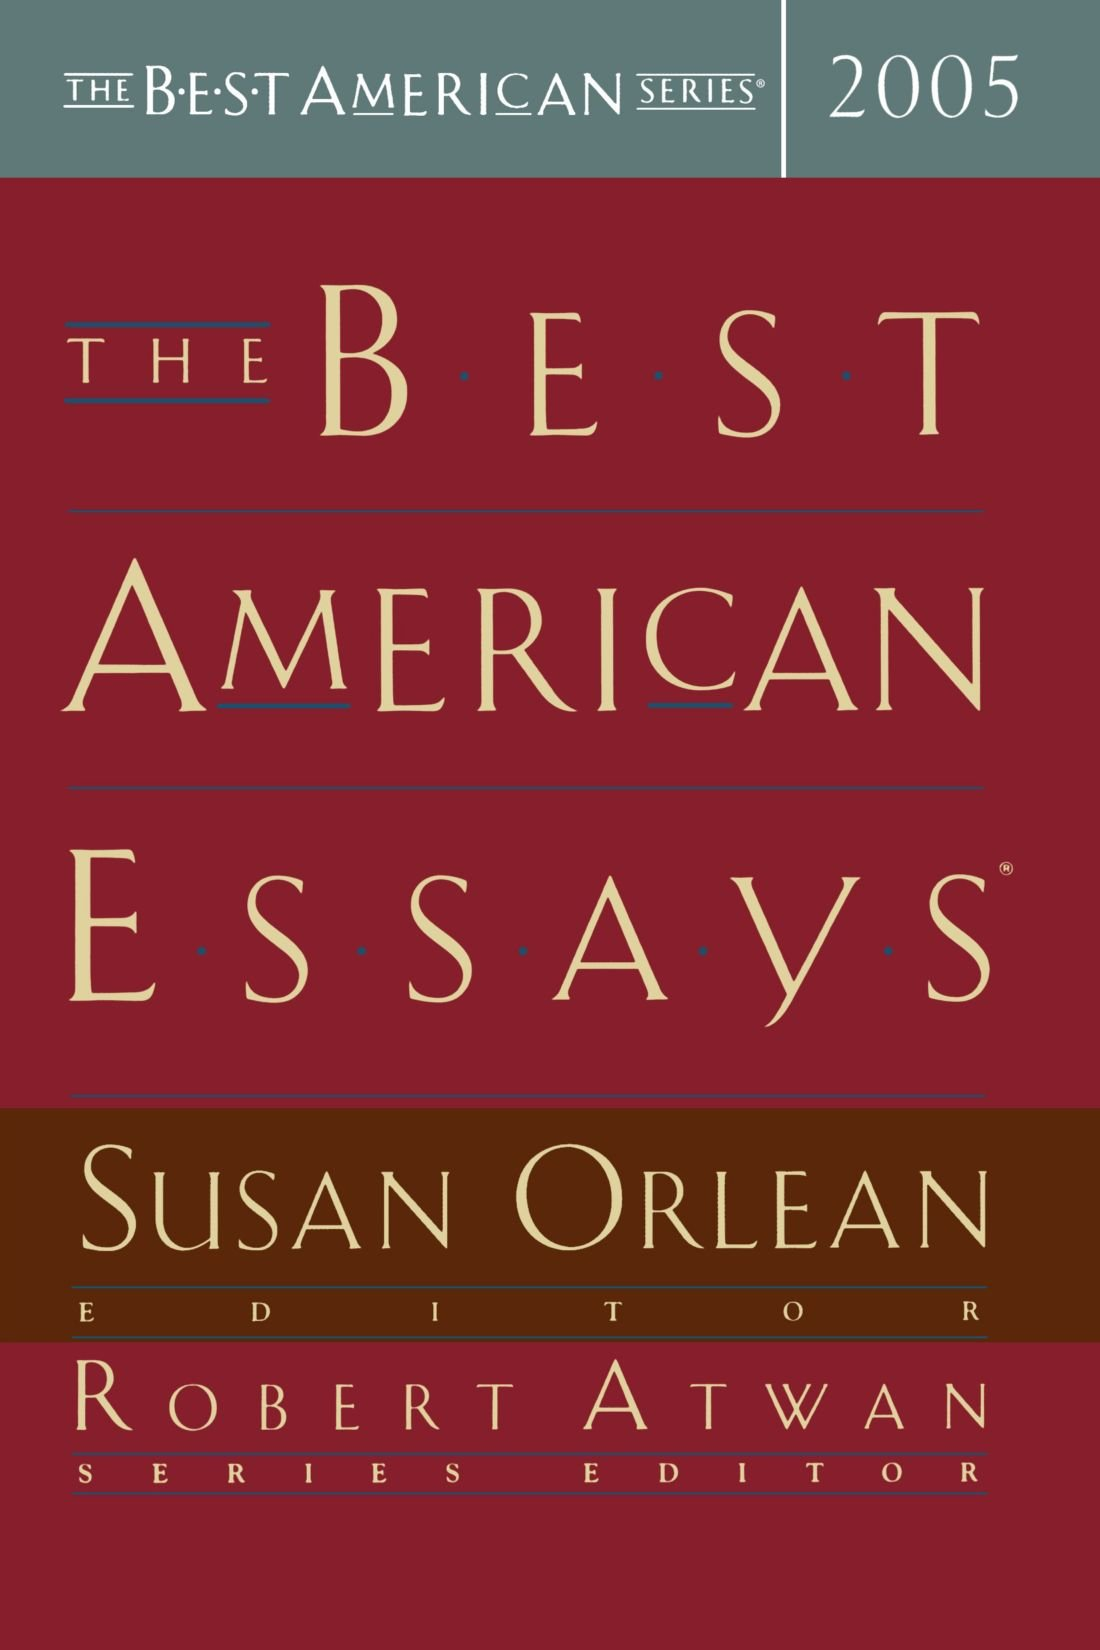 009 Essay Example 61eba7rjfxl The Best American Wonderful Essays 2013 Pdf Download Of Century Sparknotes 2017 Full